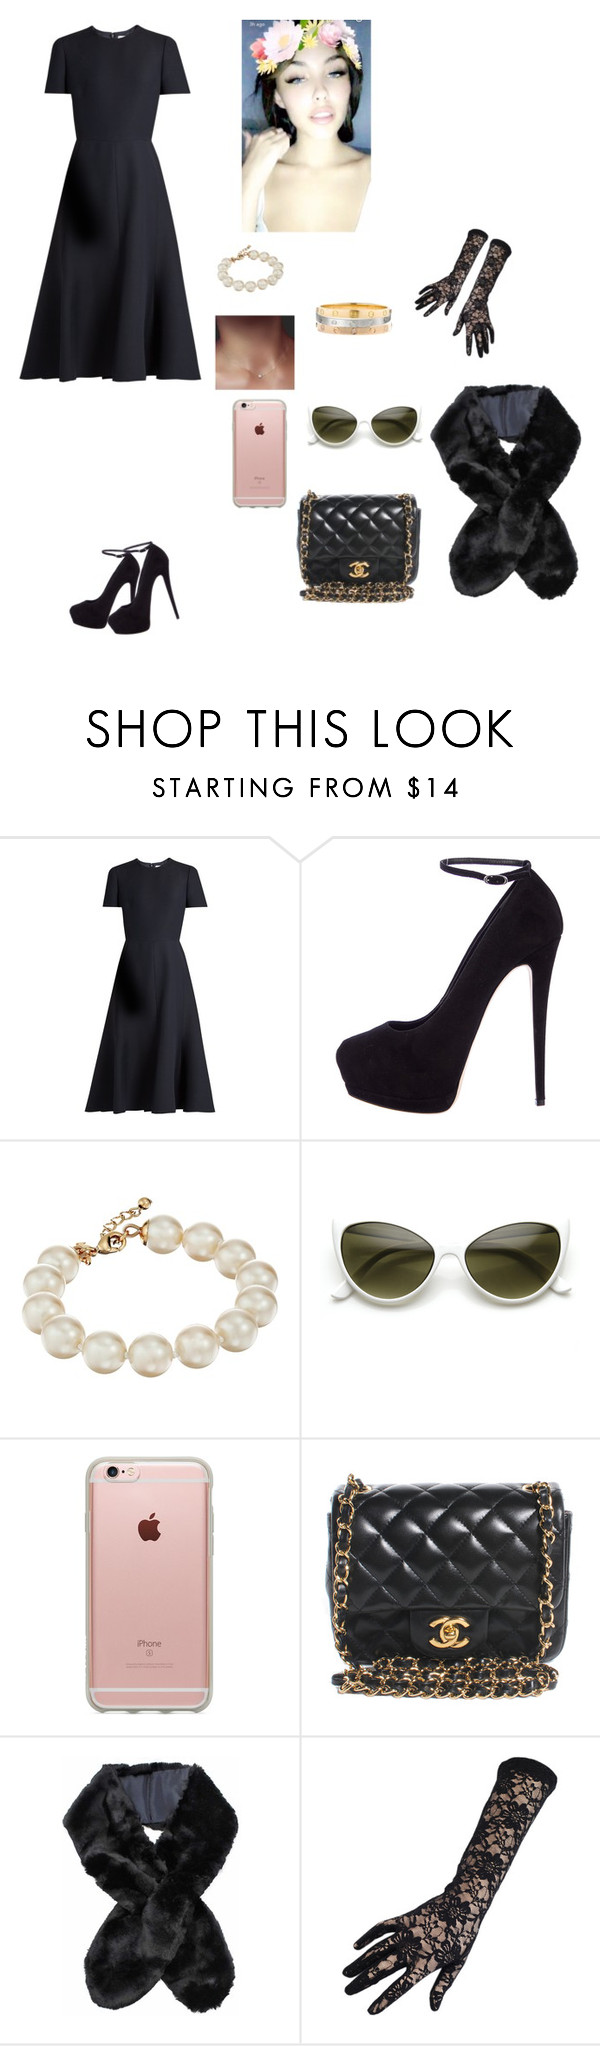 """Black widow"" by mariaxl ❤ liked on Polyvore featuring Valentino, Giuseppe Zanotti, Kate Spade, ZeroUV, Incase, Chanel and Black"